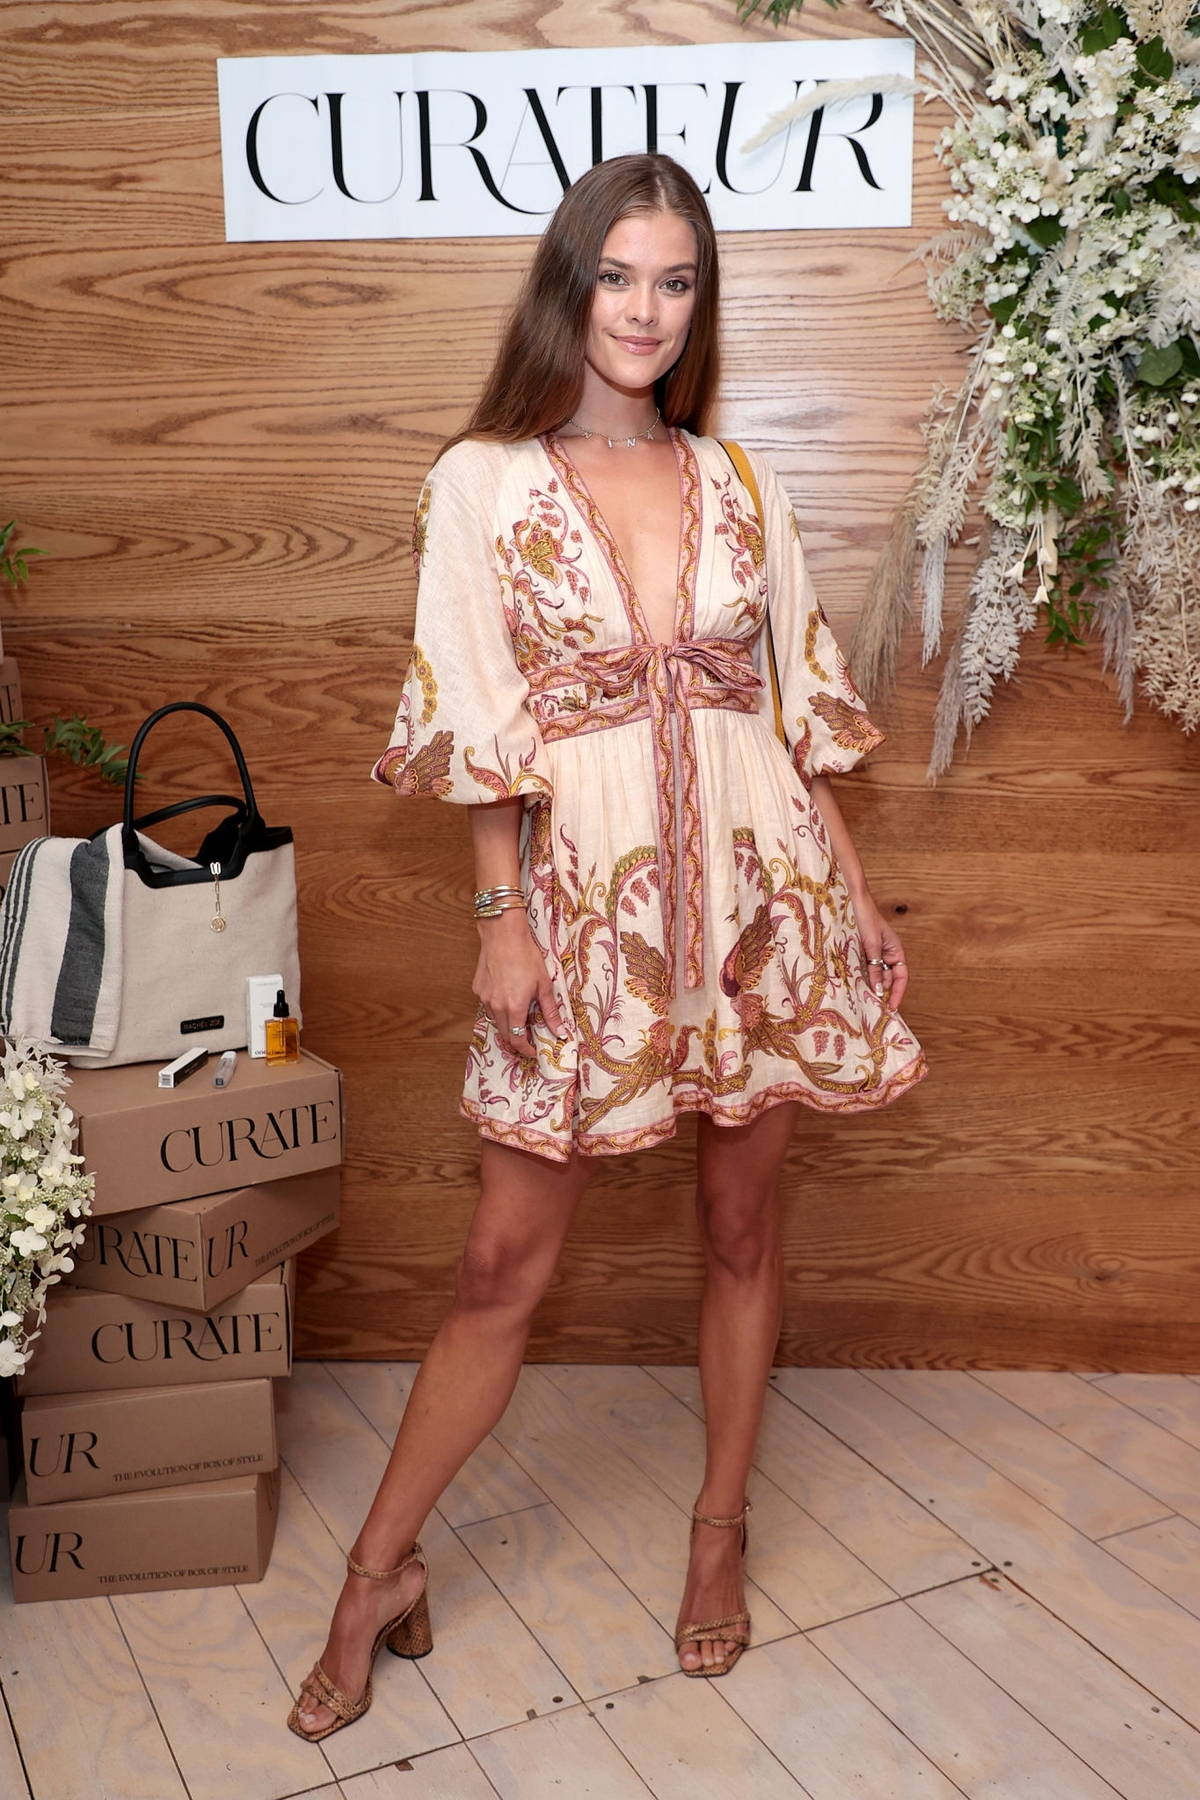 Nina Agdal attends the Curateur launch event in The Hamptons, New York